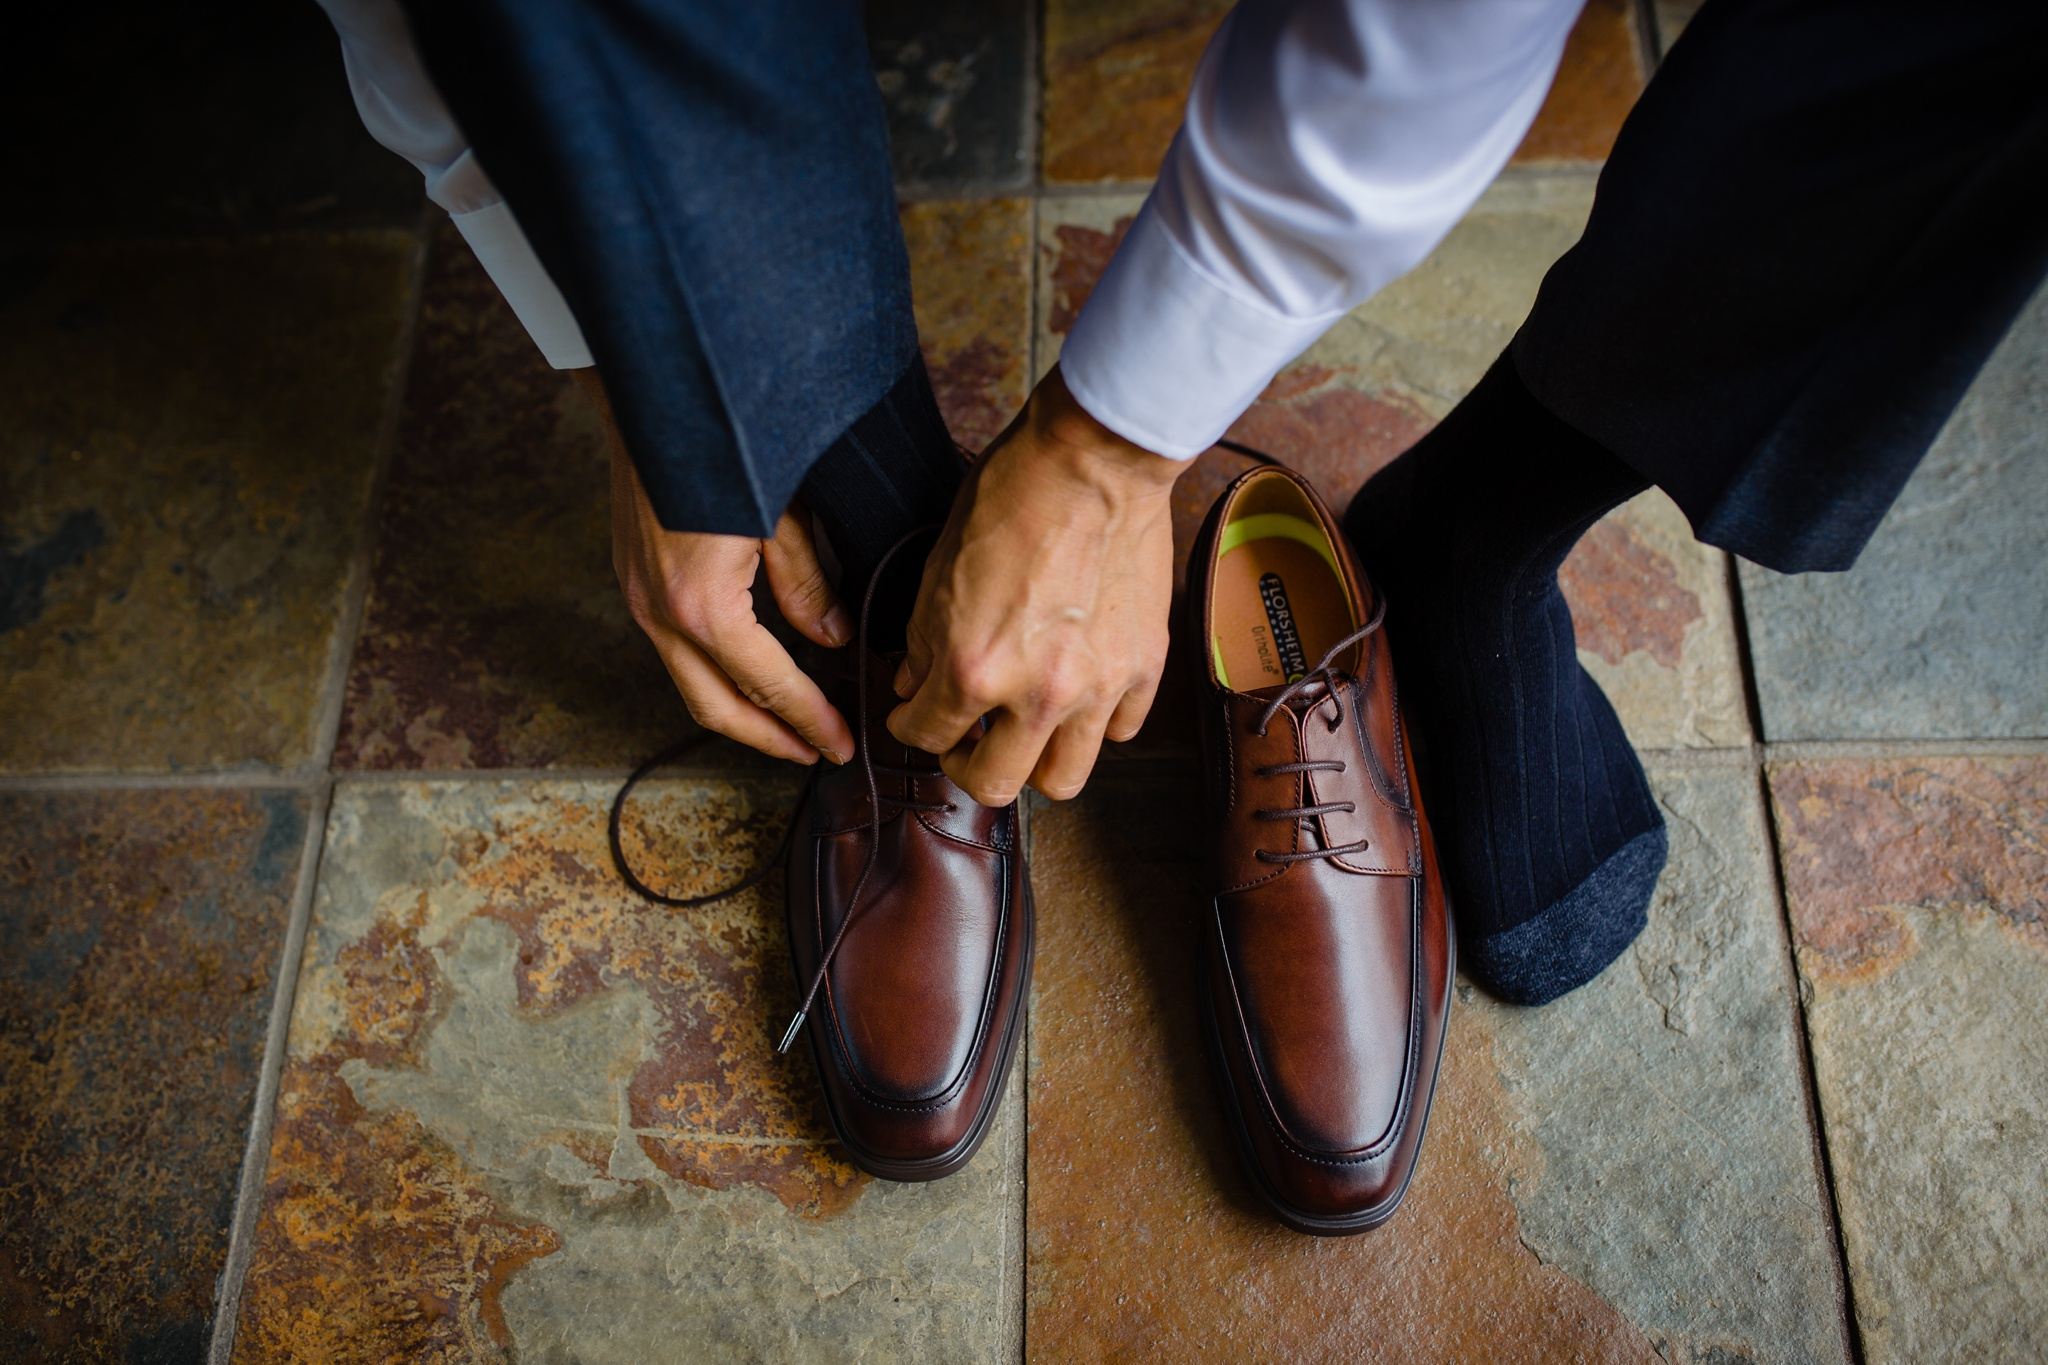 groom putting on his shoes at his wedding day at the westin hapuna